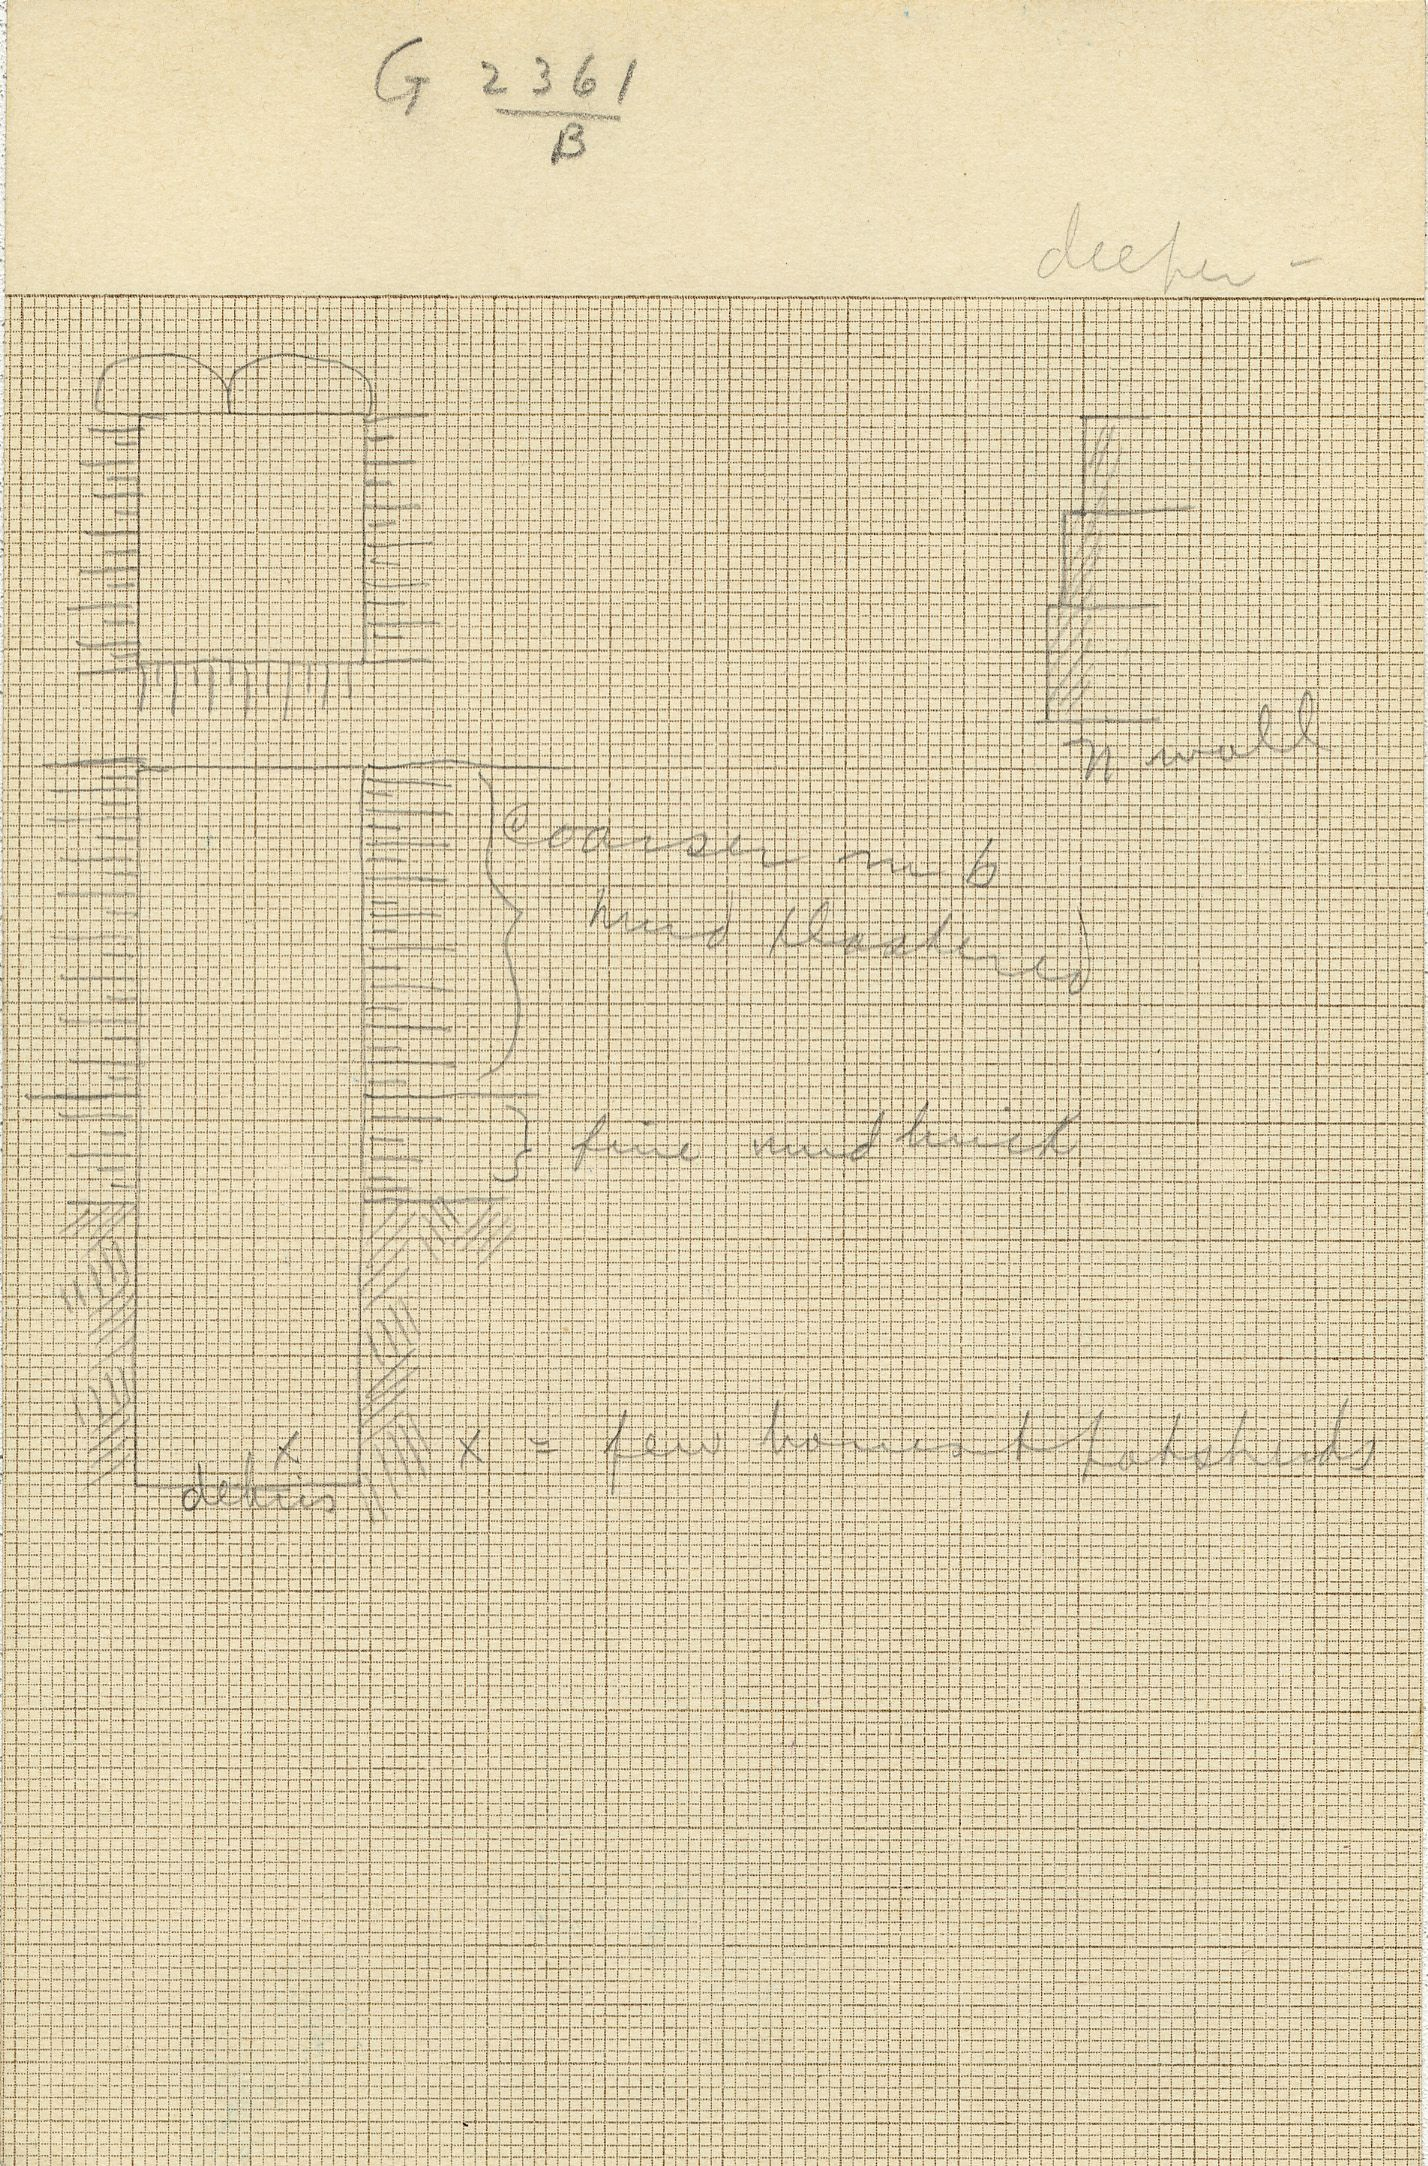 Maps and plans: G 2361, Shaft B